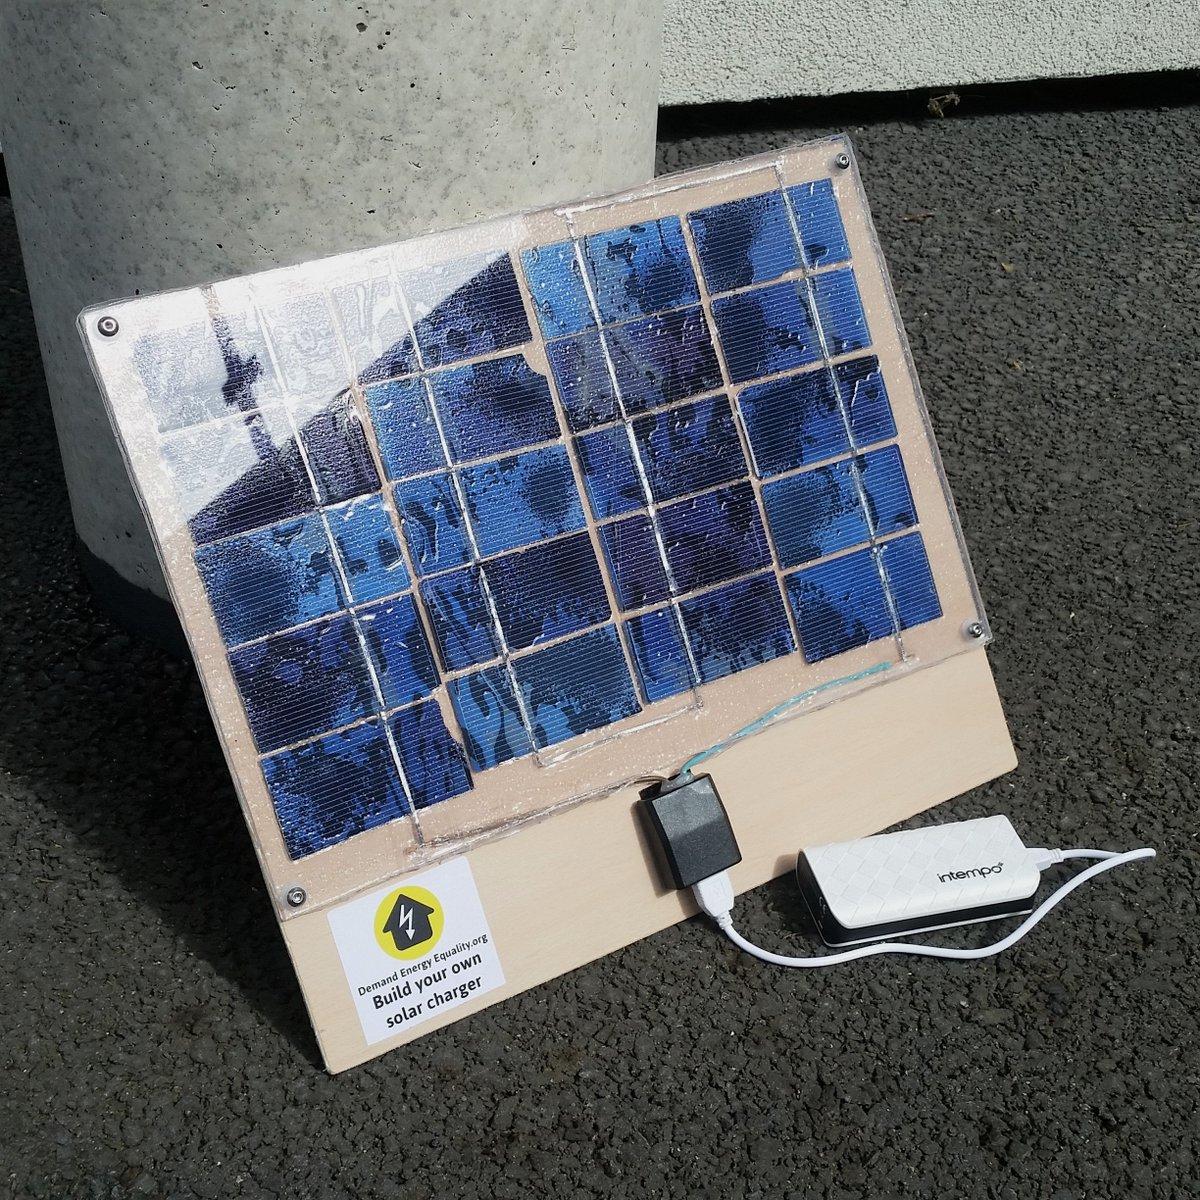 Diysolar Hashtag On Twitter Solar Charger Build Join Us In Lewisham To Learn How Your Own Panel From Scratch Https Demandenergyequalityorg Diy Pic 9dwmxceaks